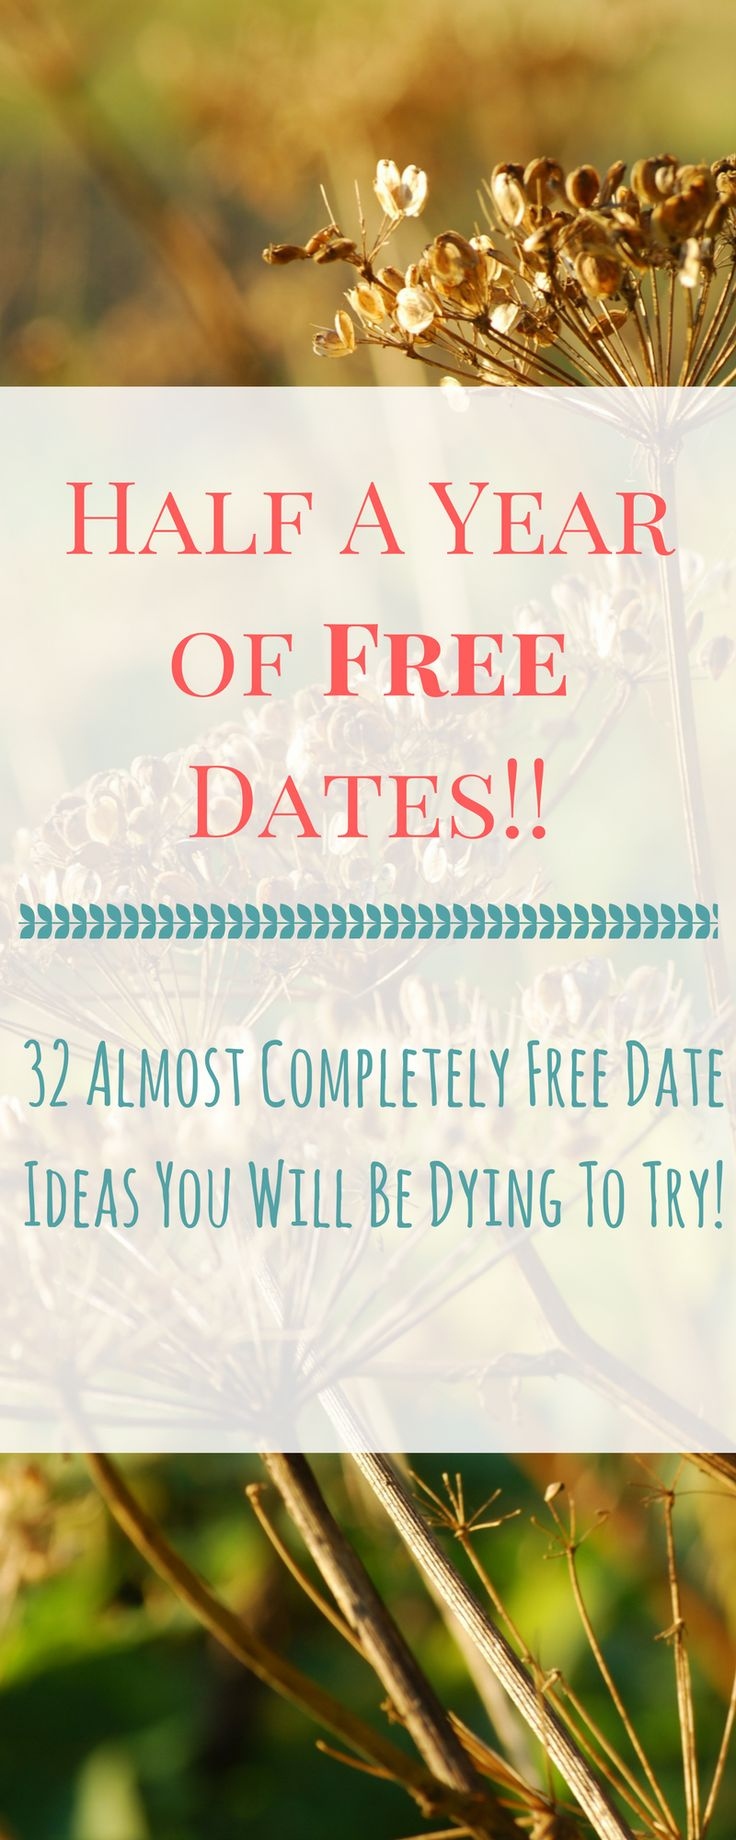 Half A Year of Free Dates- 32 Almost Completely Free Date Ideas You'll Be Dying To Try — Holly Bunker